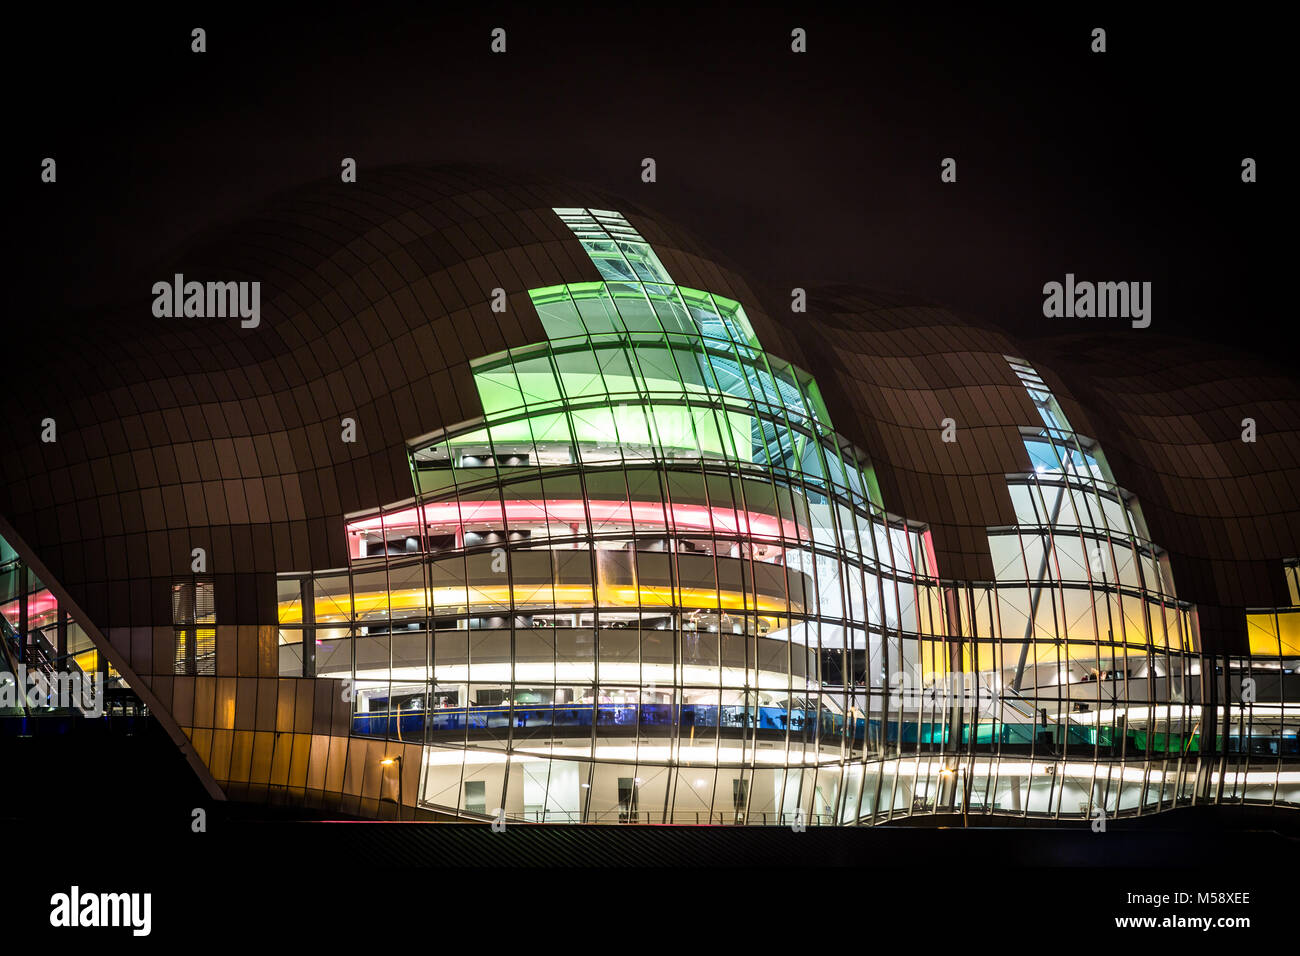 The Sage building on the Newcastle upon Tyne Quayside at night. - Stock Image